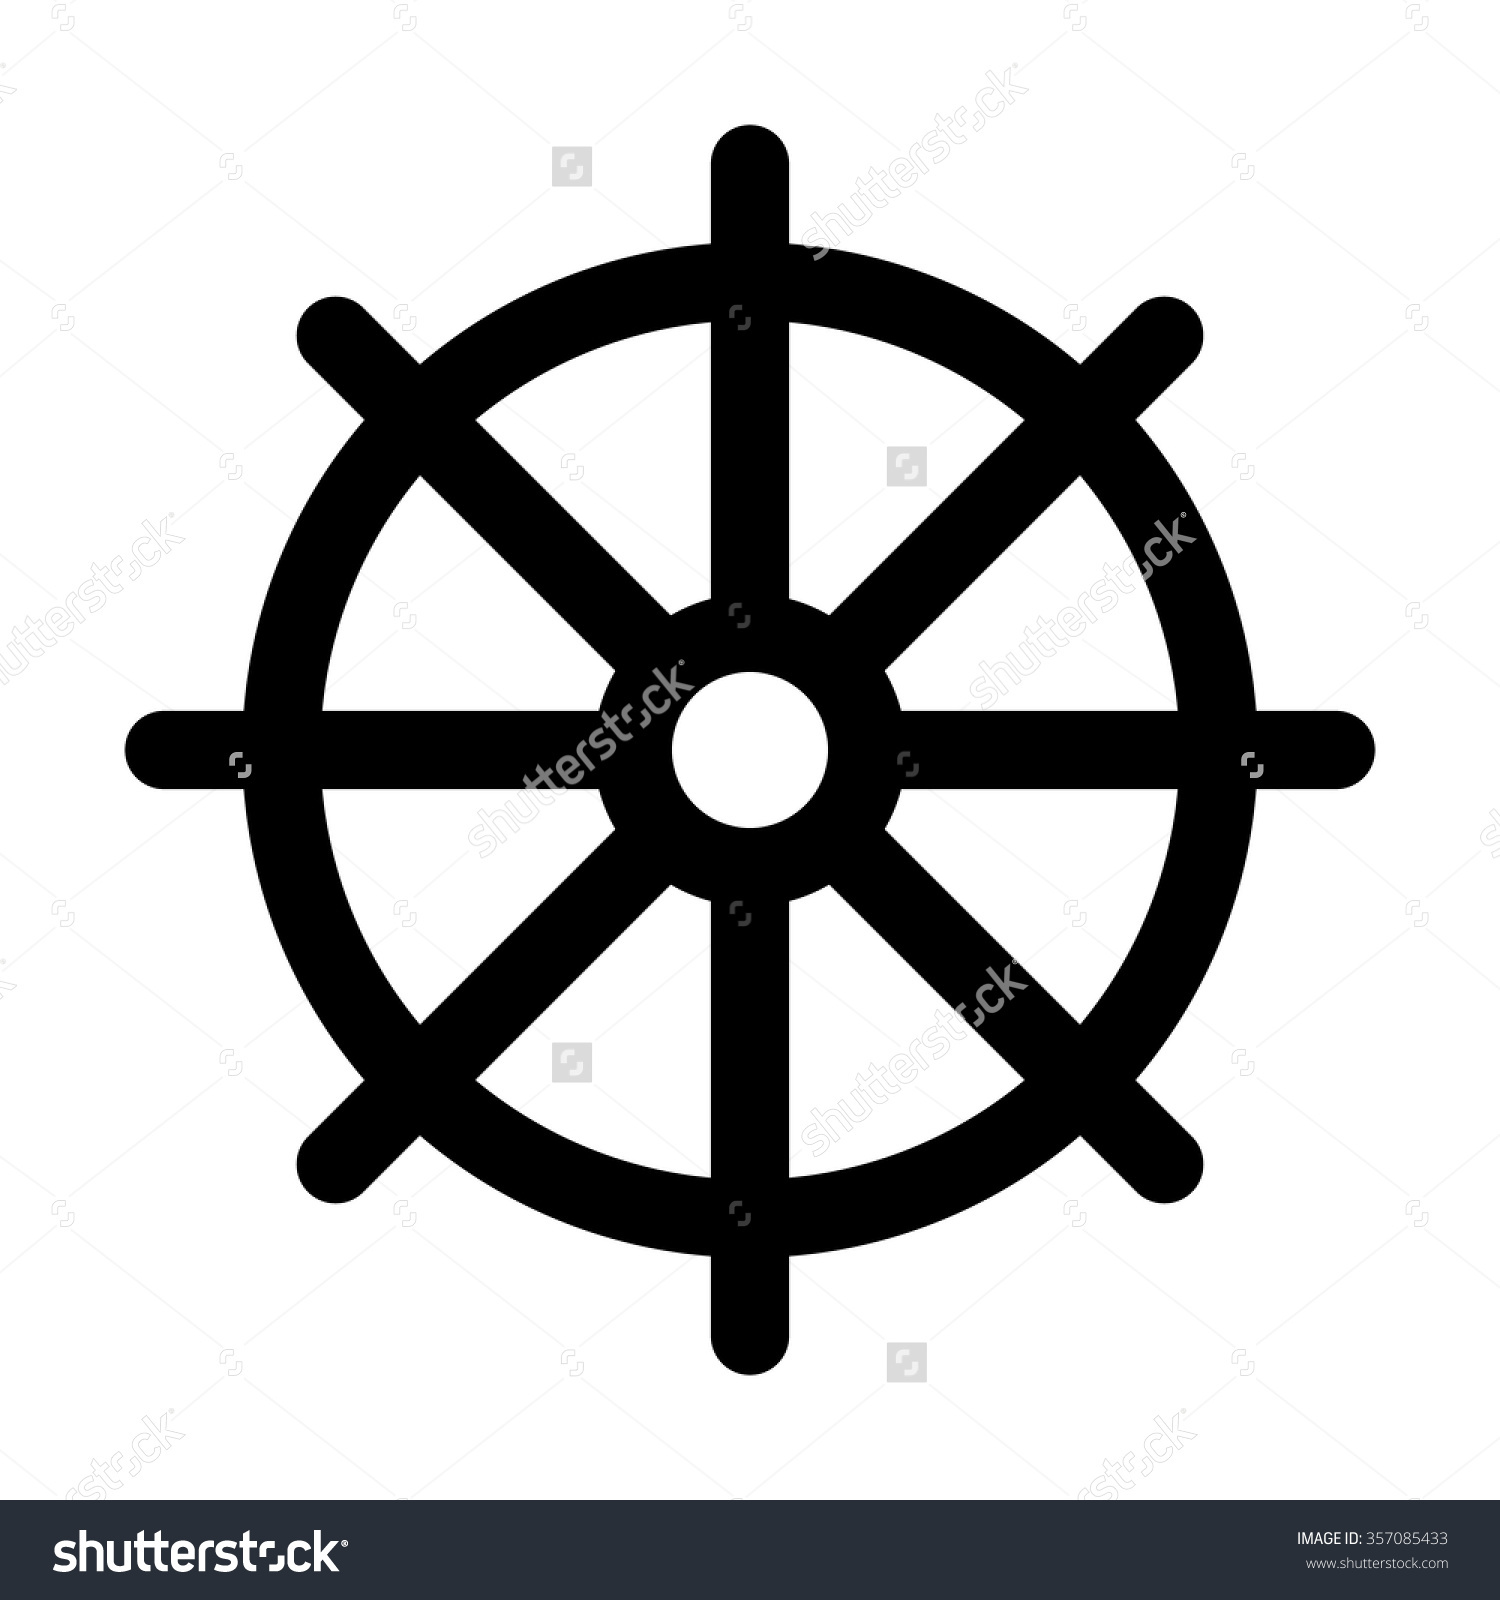 Karma symbol hindu gallery symbol and sign ideas wheel of dharma hd png transparent wheel of dharma hdg images dhamma chakra clipart wheel of buycottarizona